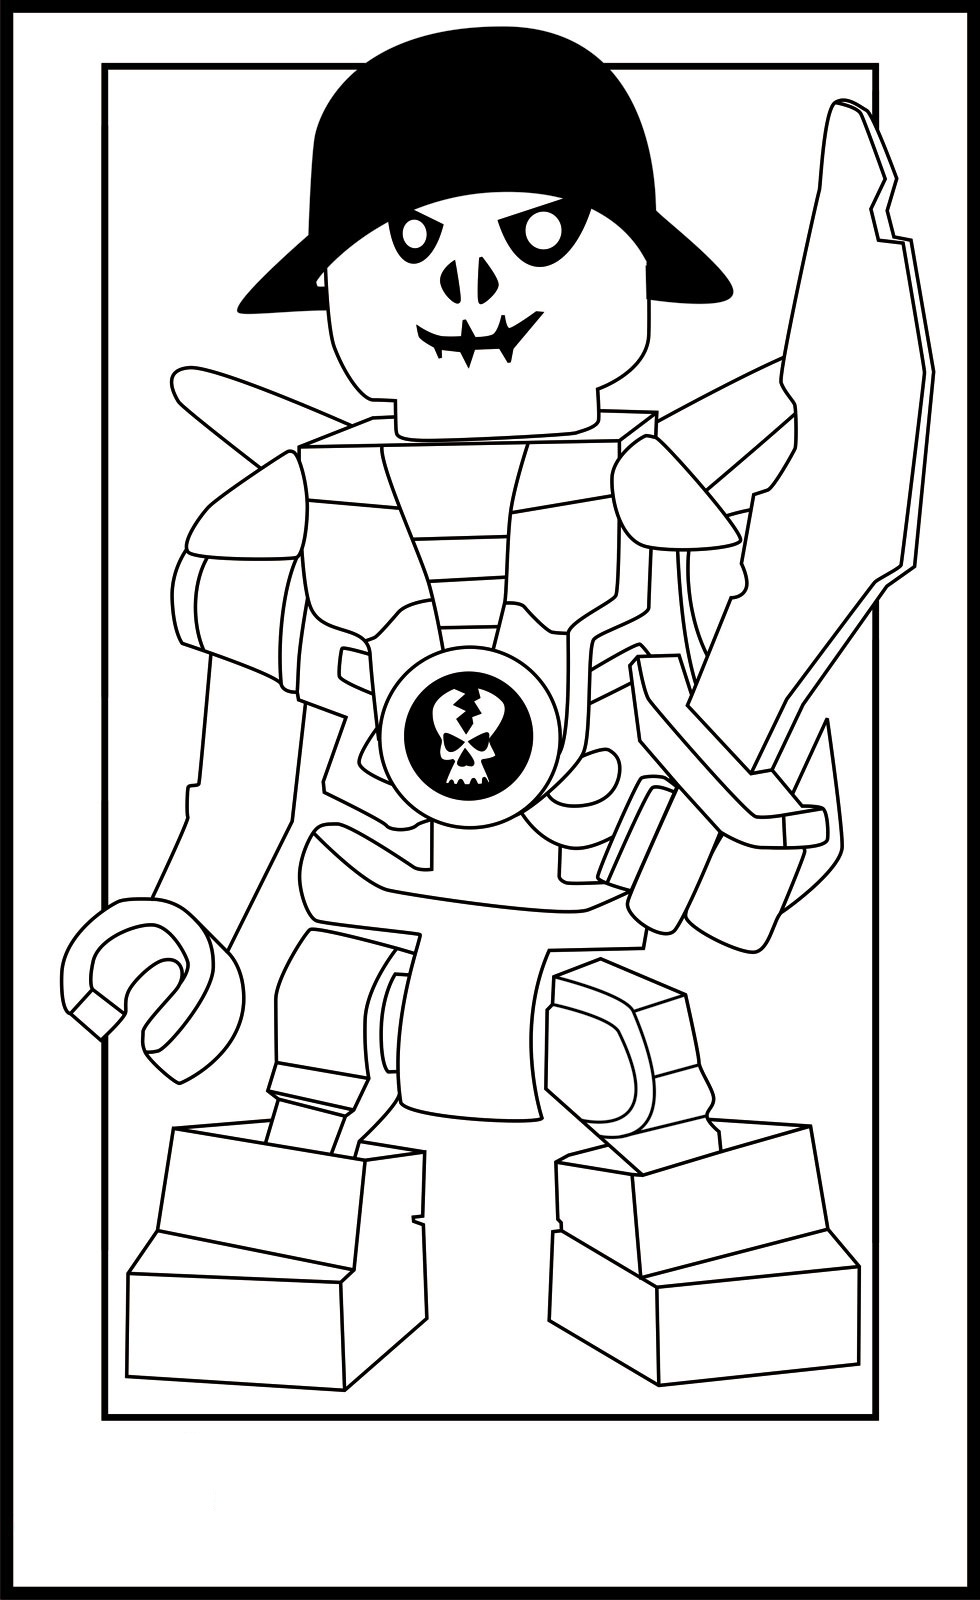 Free printable coloring pages lego ninjago - Coloring Pages Of Lego Ninjago